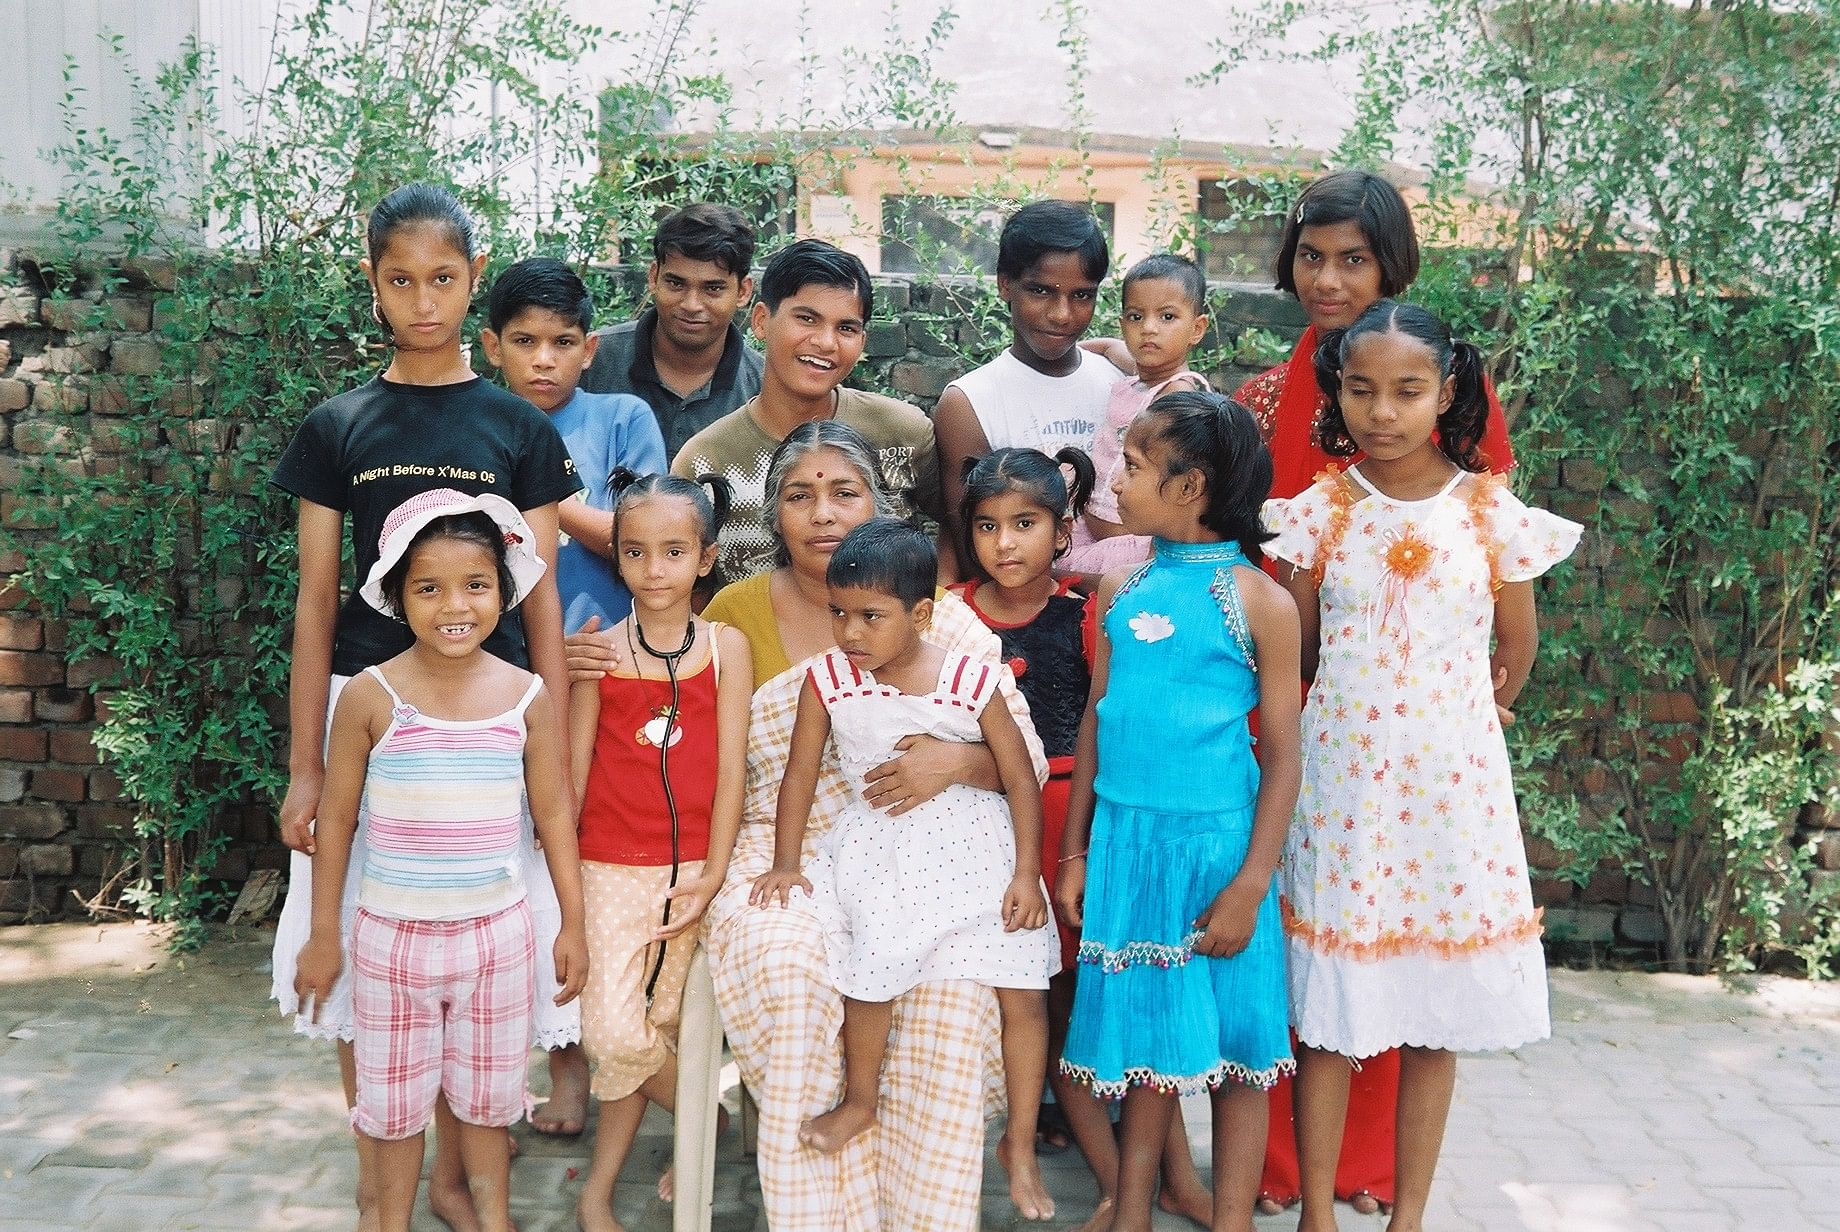 Saikripa: Extending Your Heart and Family To Take In The Homeless